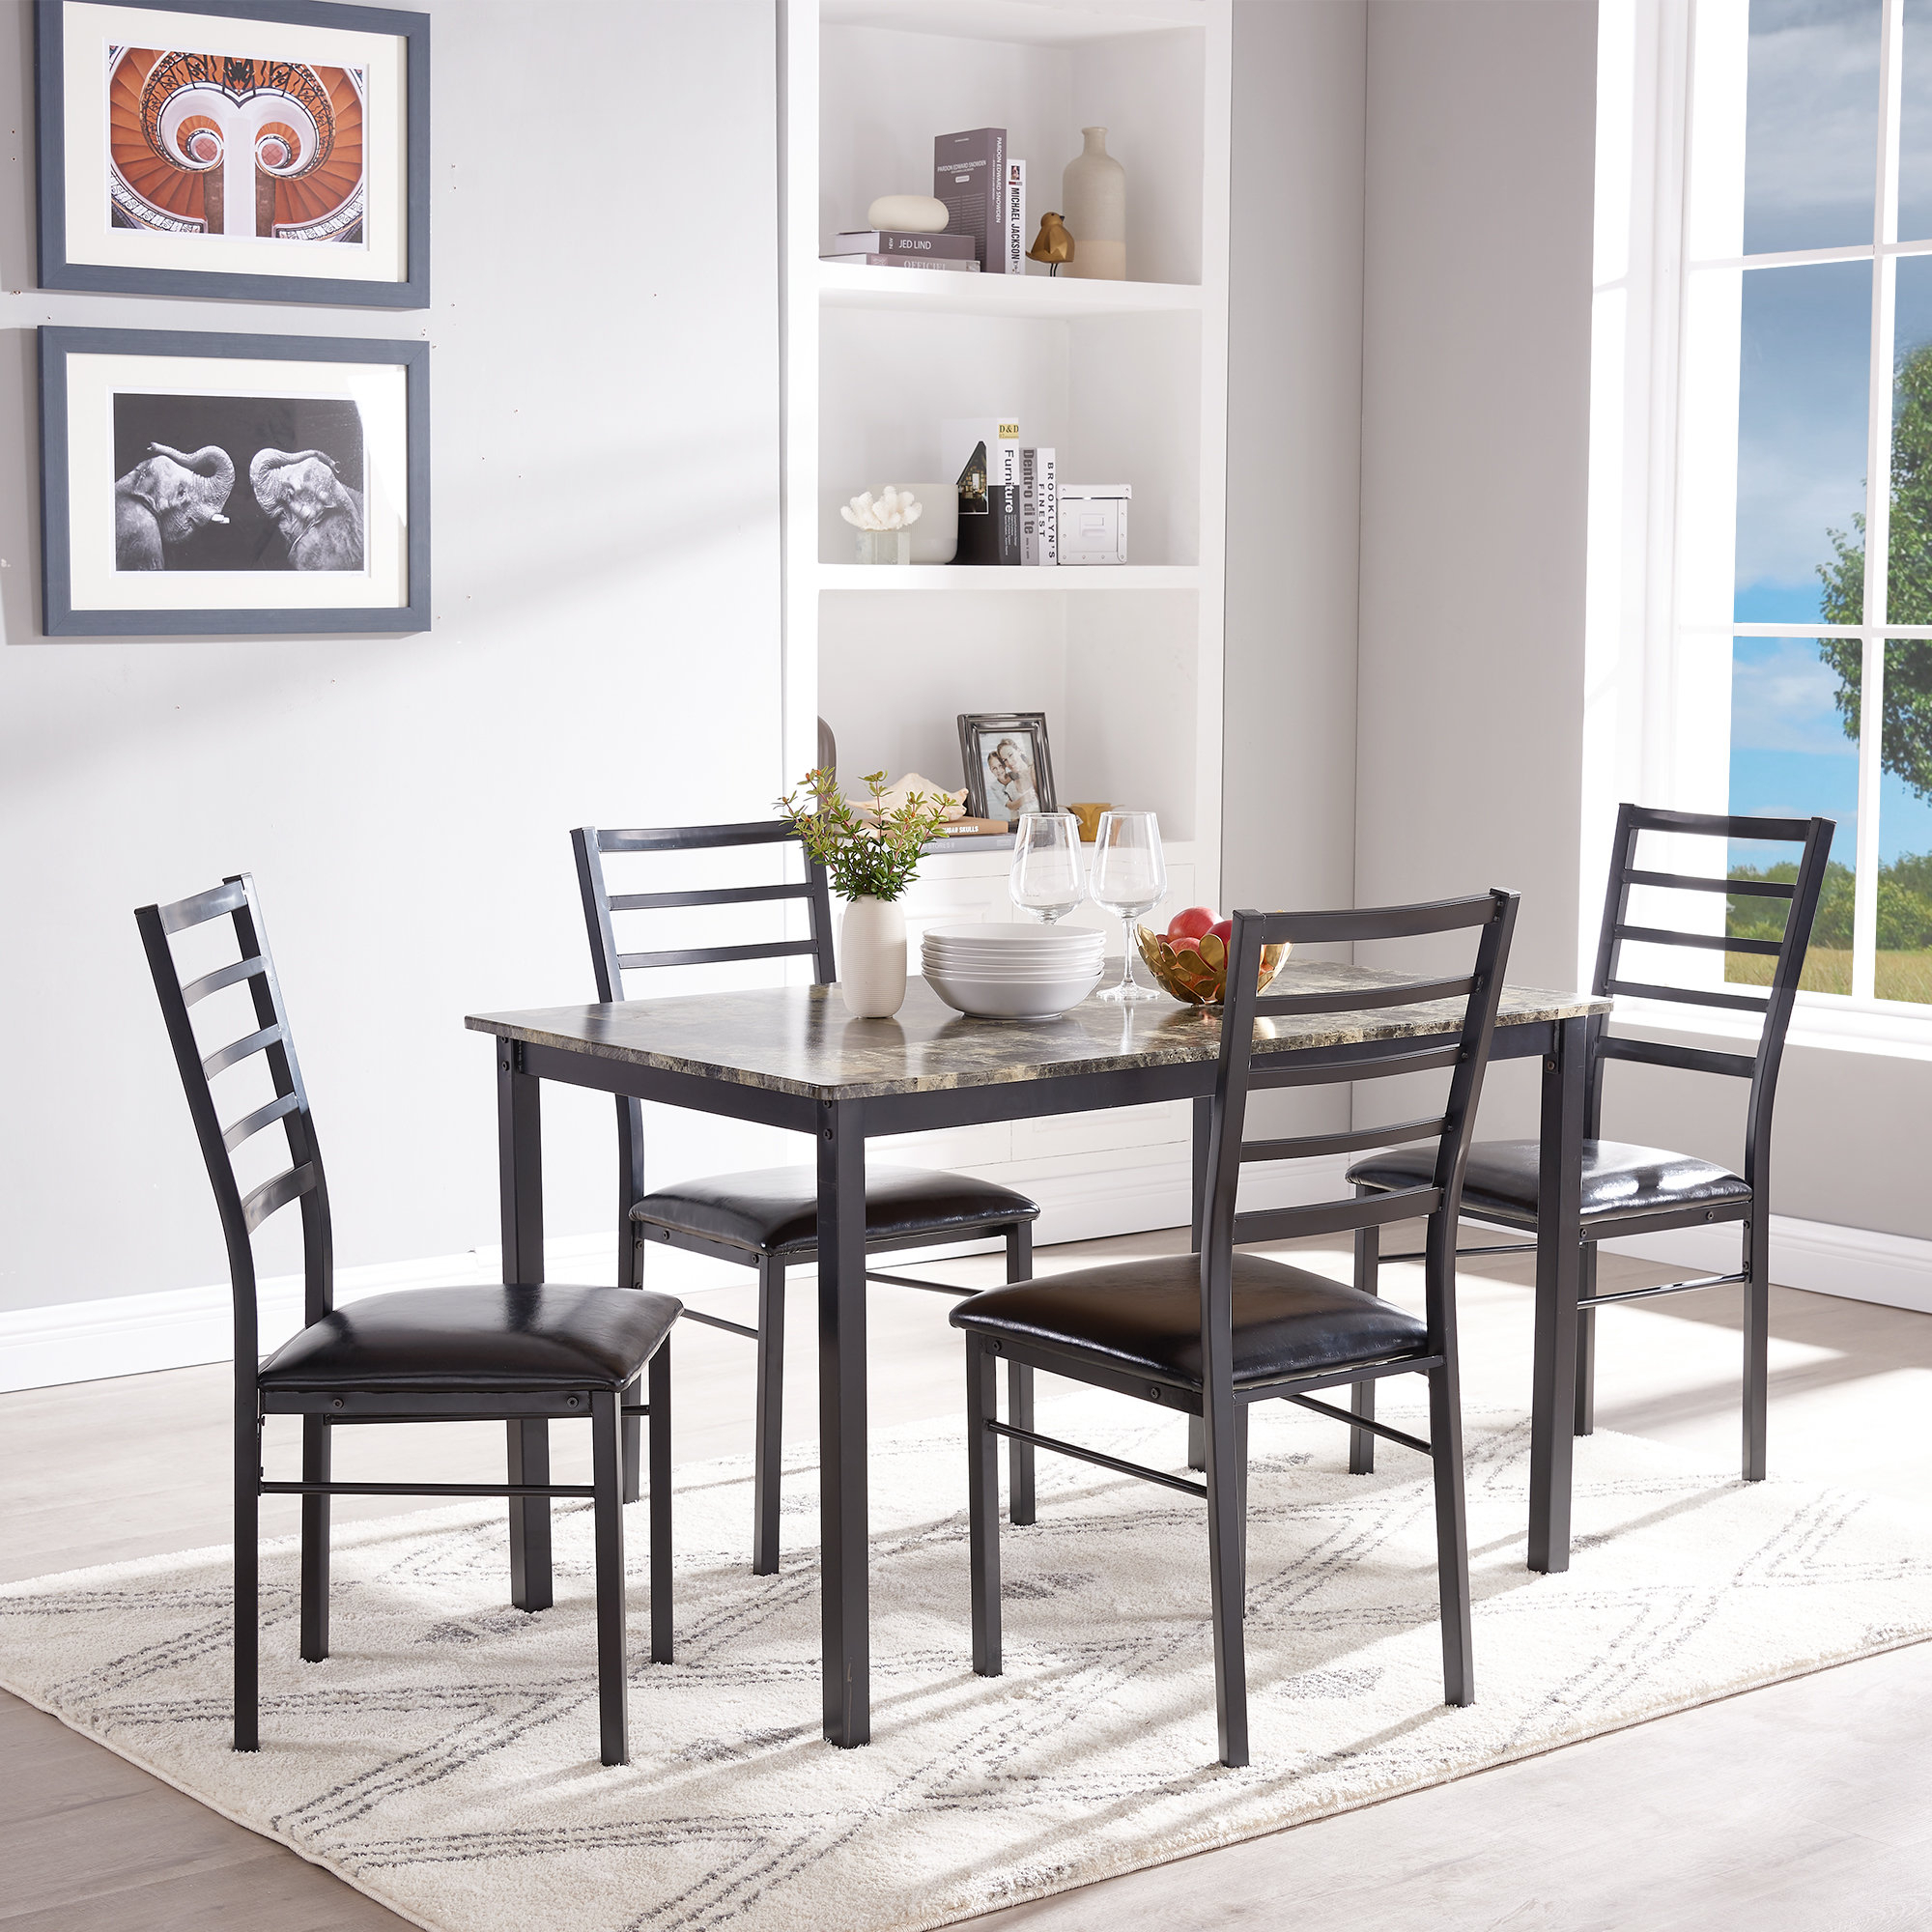 Ebay Pertaining To Recent Casiano 5 Piece Dining Sets (View 10 of 20)